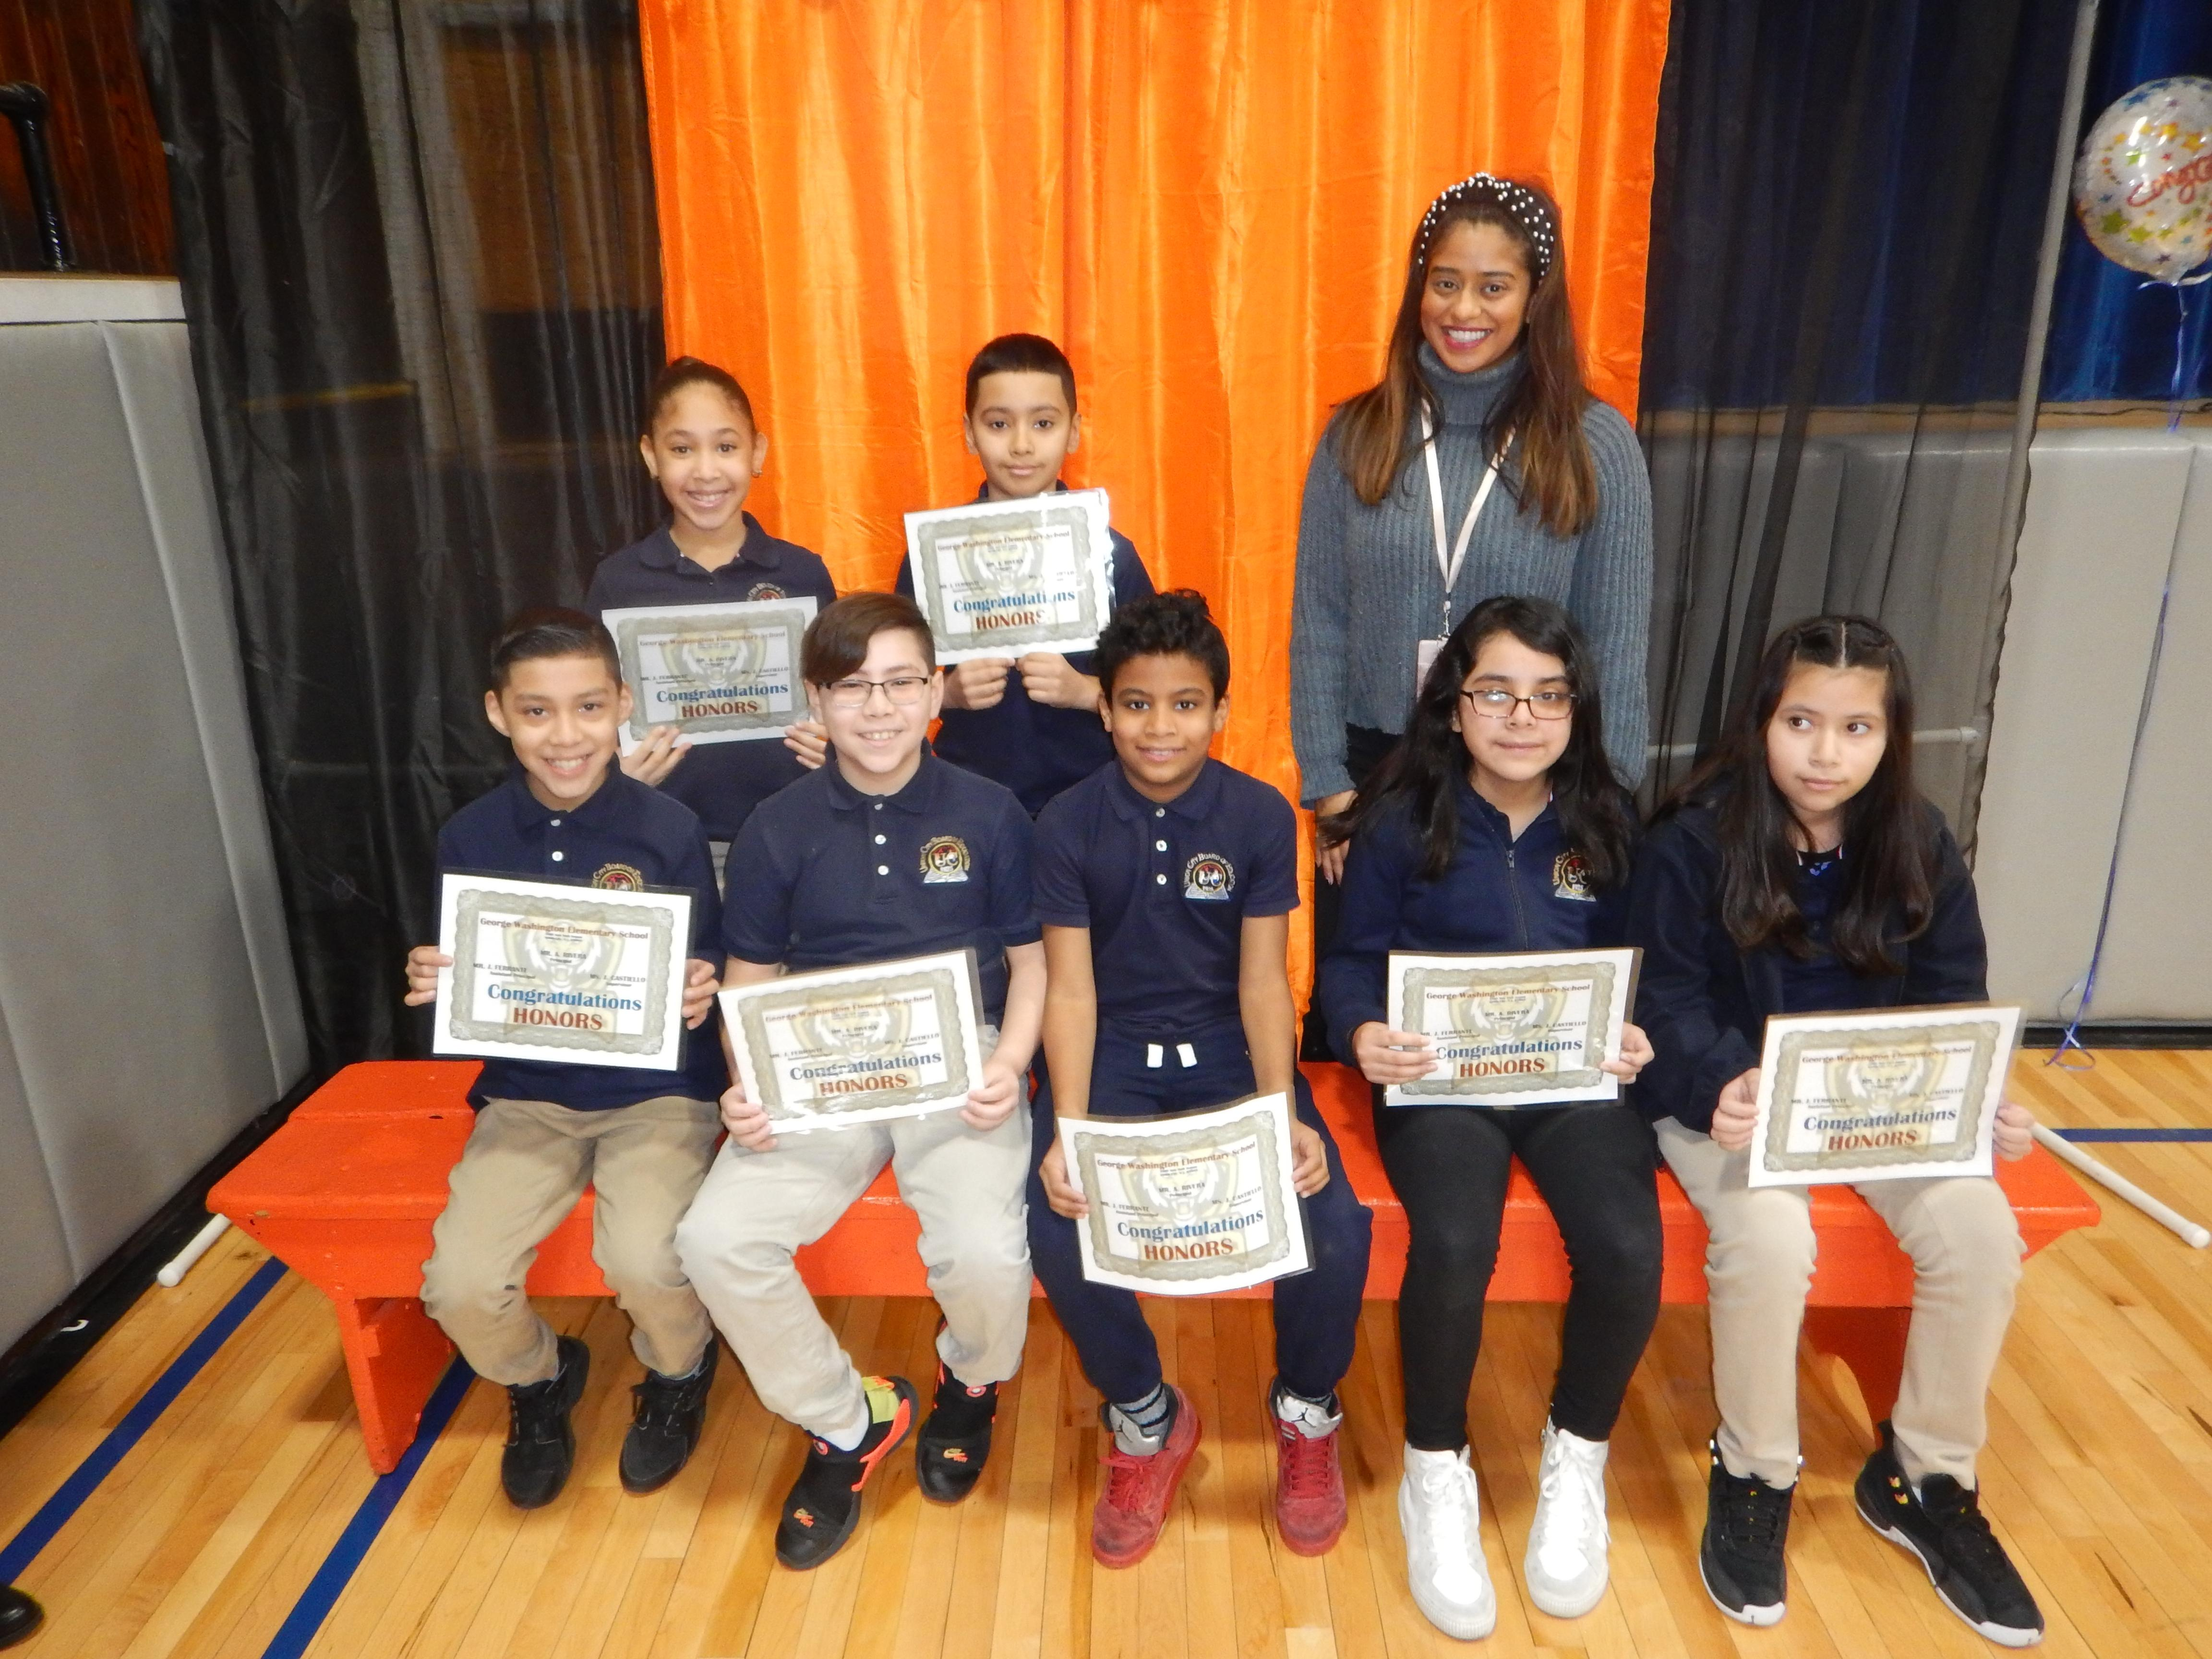 7 Honor Roll Students with their Teacher and certificates